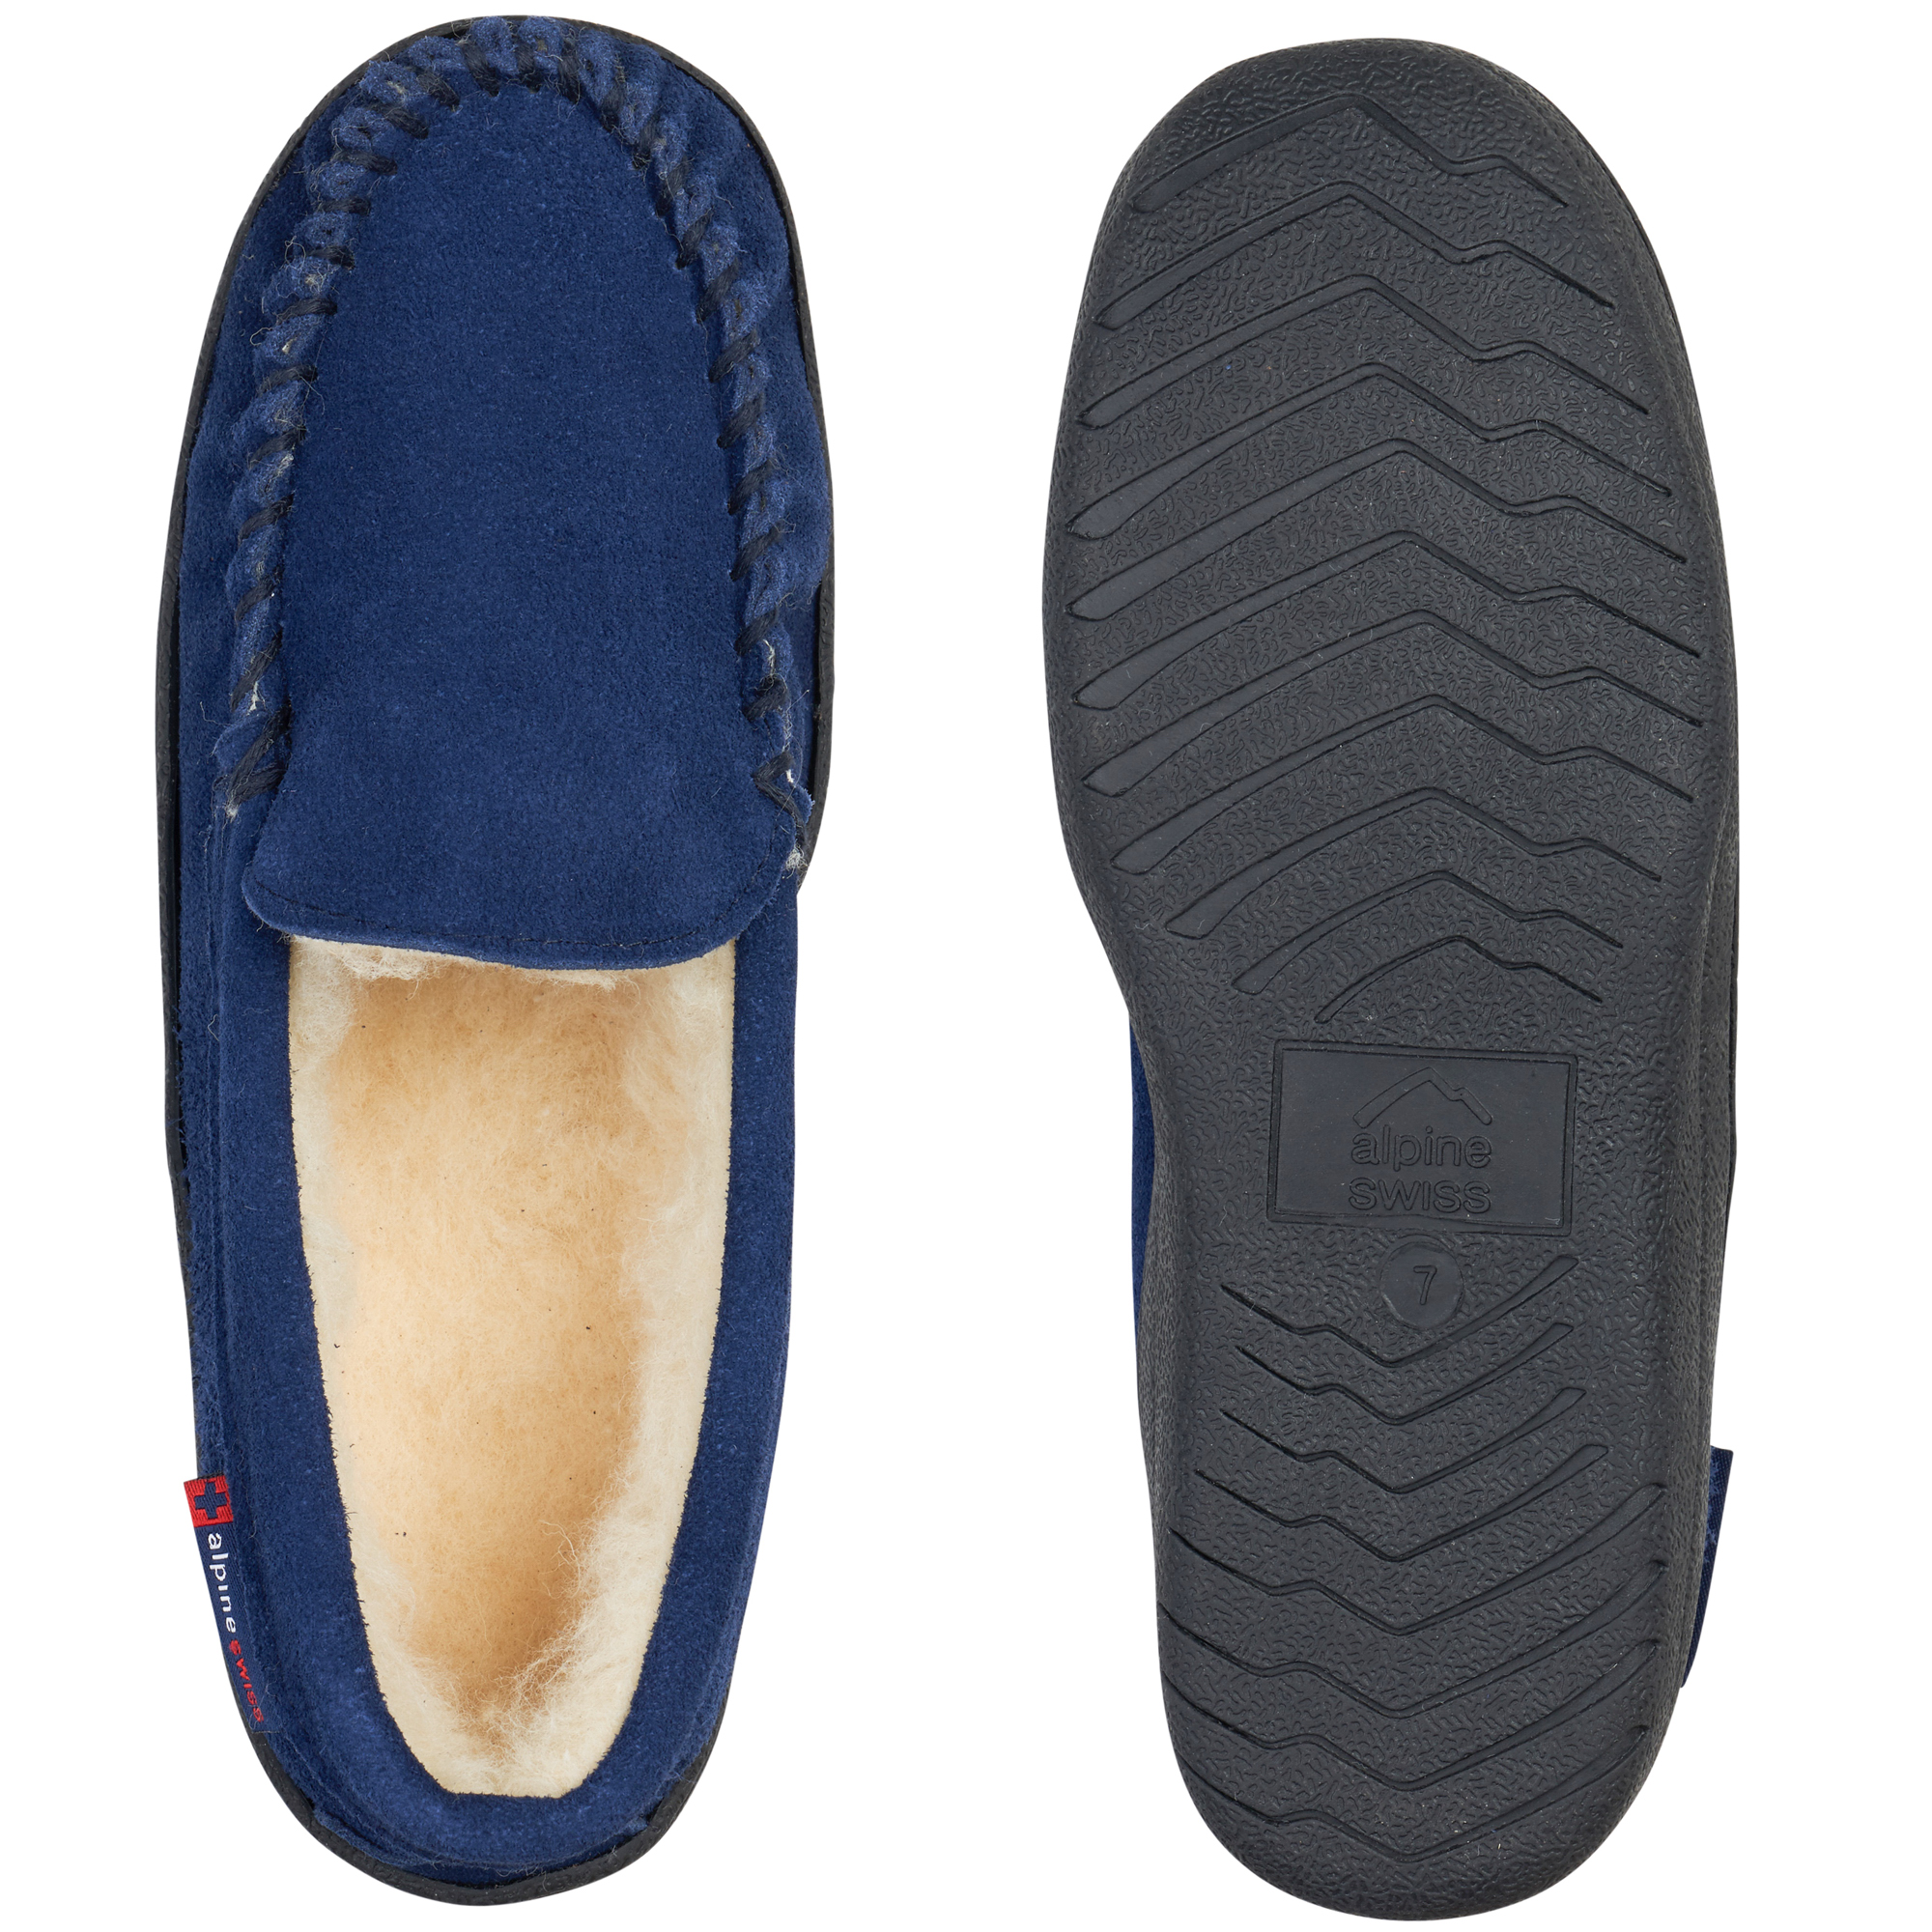 thumbnail 36 - Alpine-Swiss-Yukon-Mens-Suede-Shearling-Moccasin-Slippers-Moc-Toe-Slip-On-Shoes